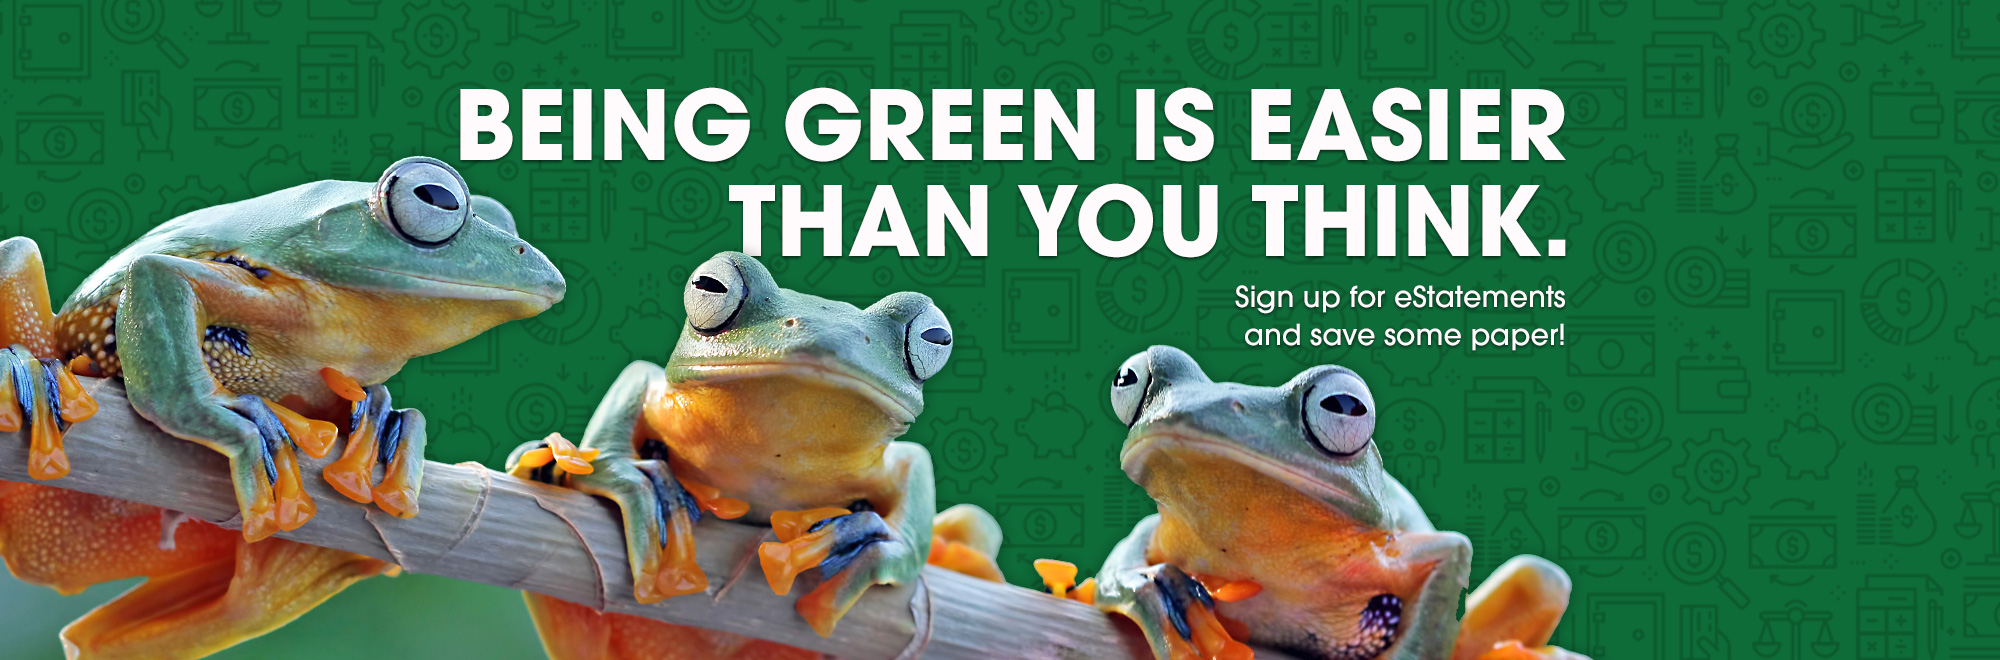 Being green is easier than you think. Sign up for eStatements and save some paper.